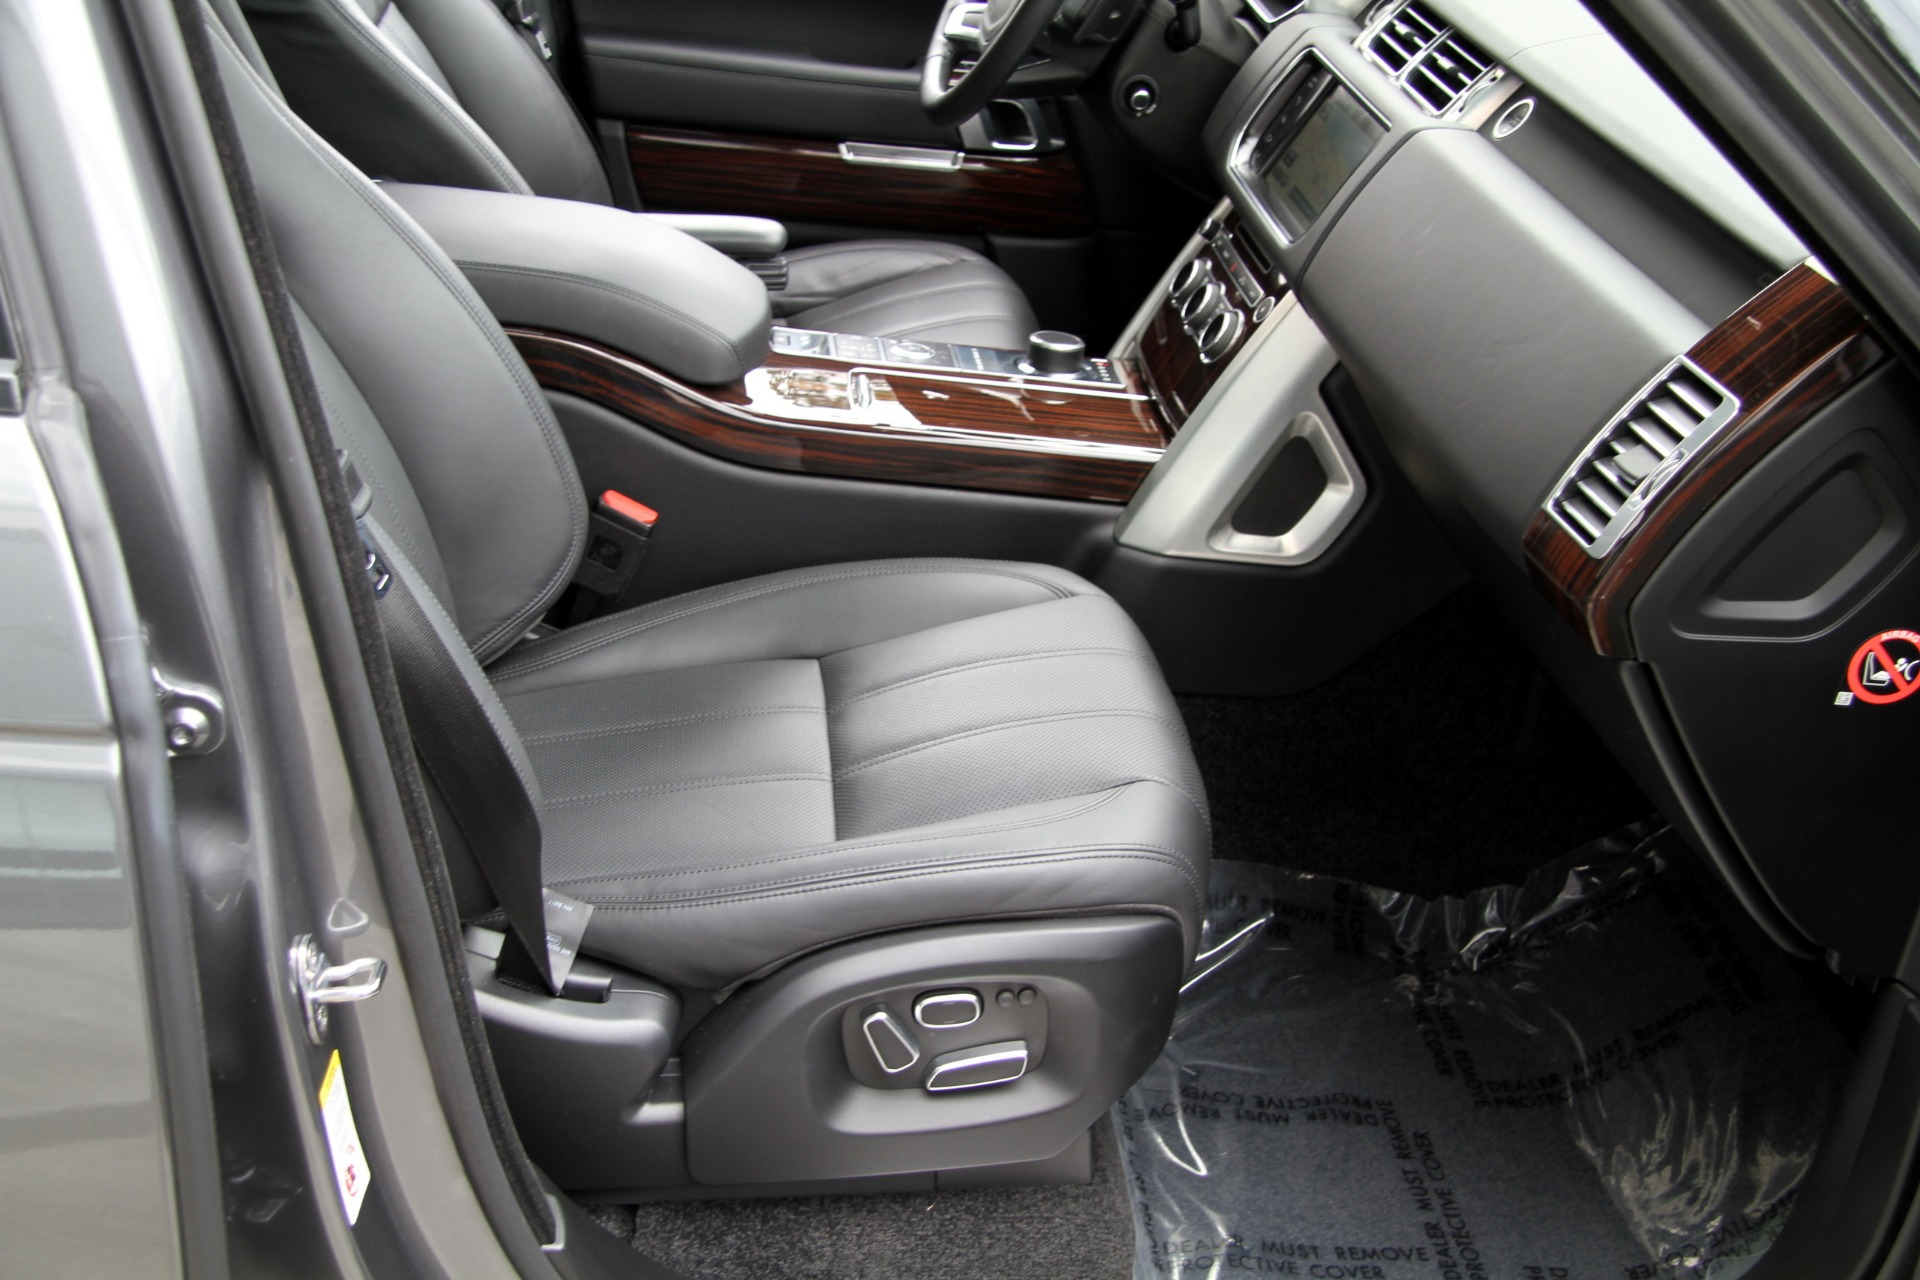 Used Range Rover For Sale Near Me >> 2015 Land Rover Range Rover Supercharged *** LOW MILES ...